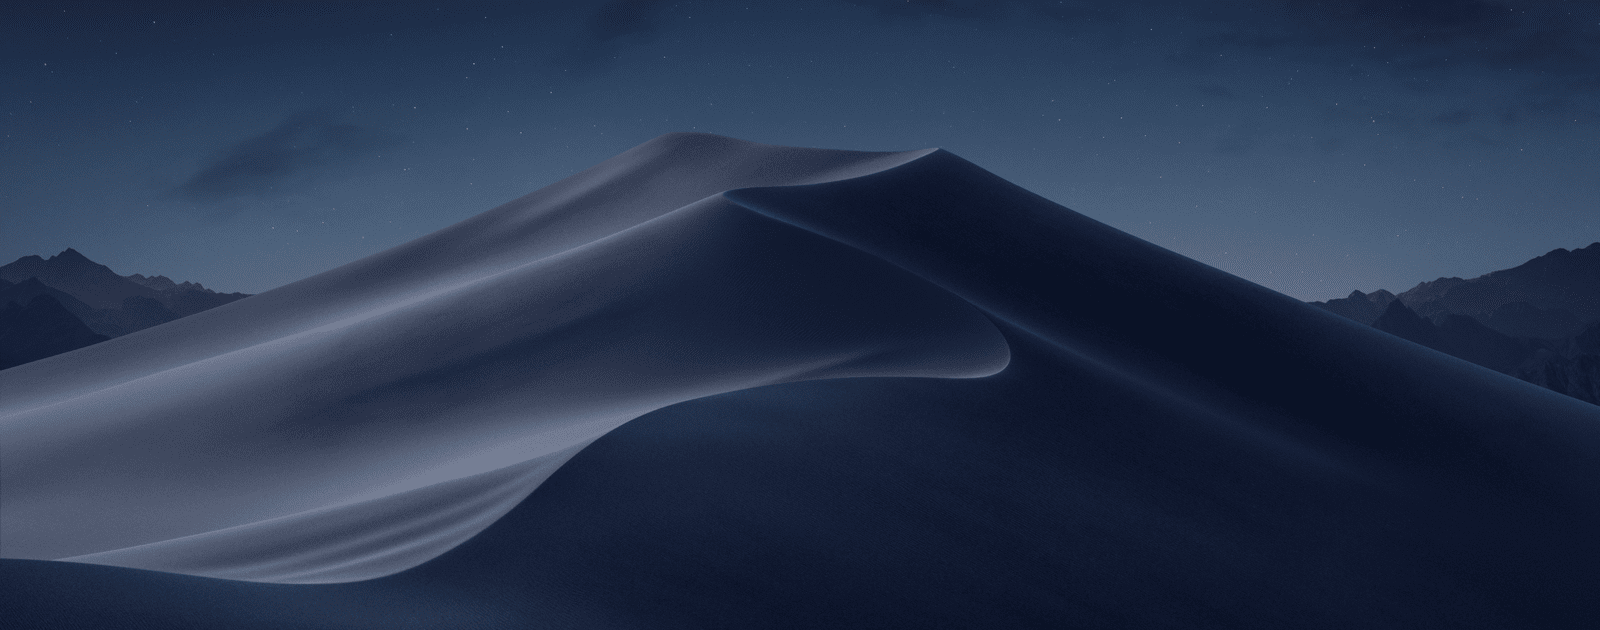 Thoughts on Dark Mode in macOS Mojave